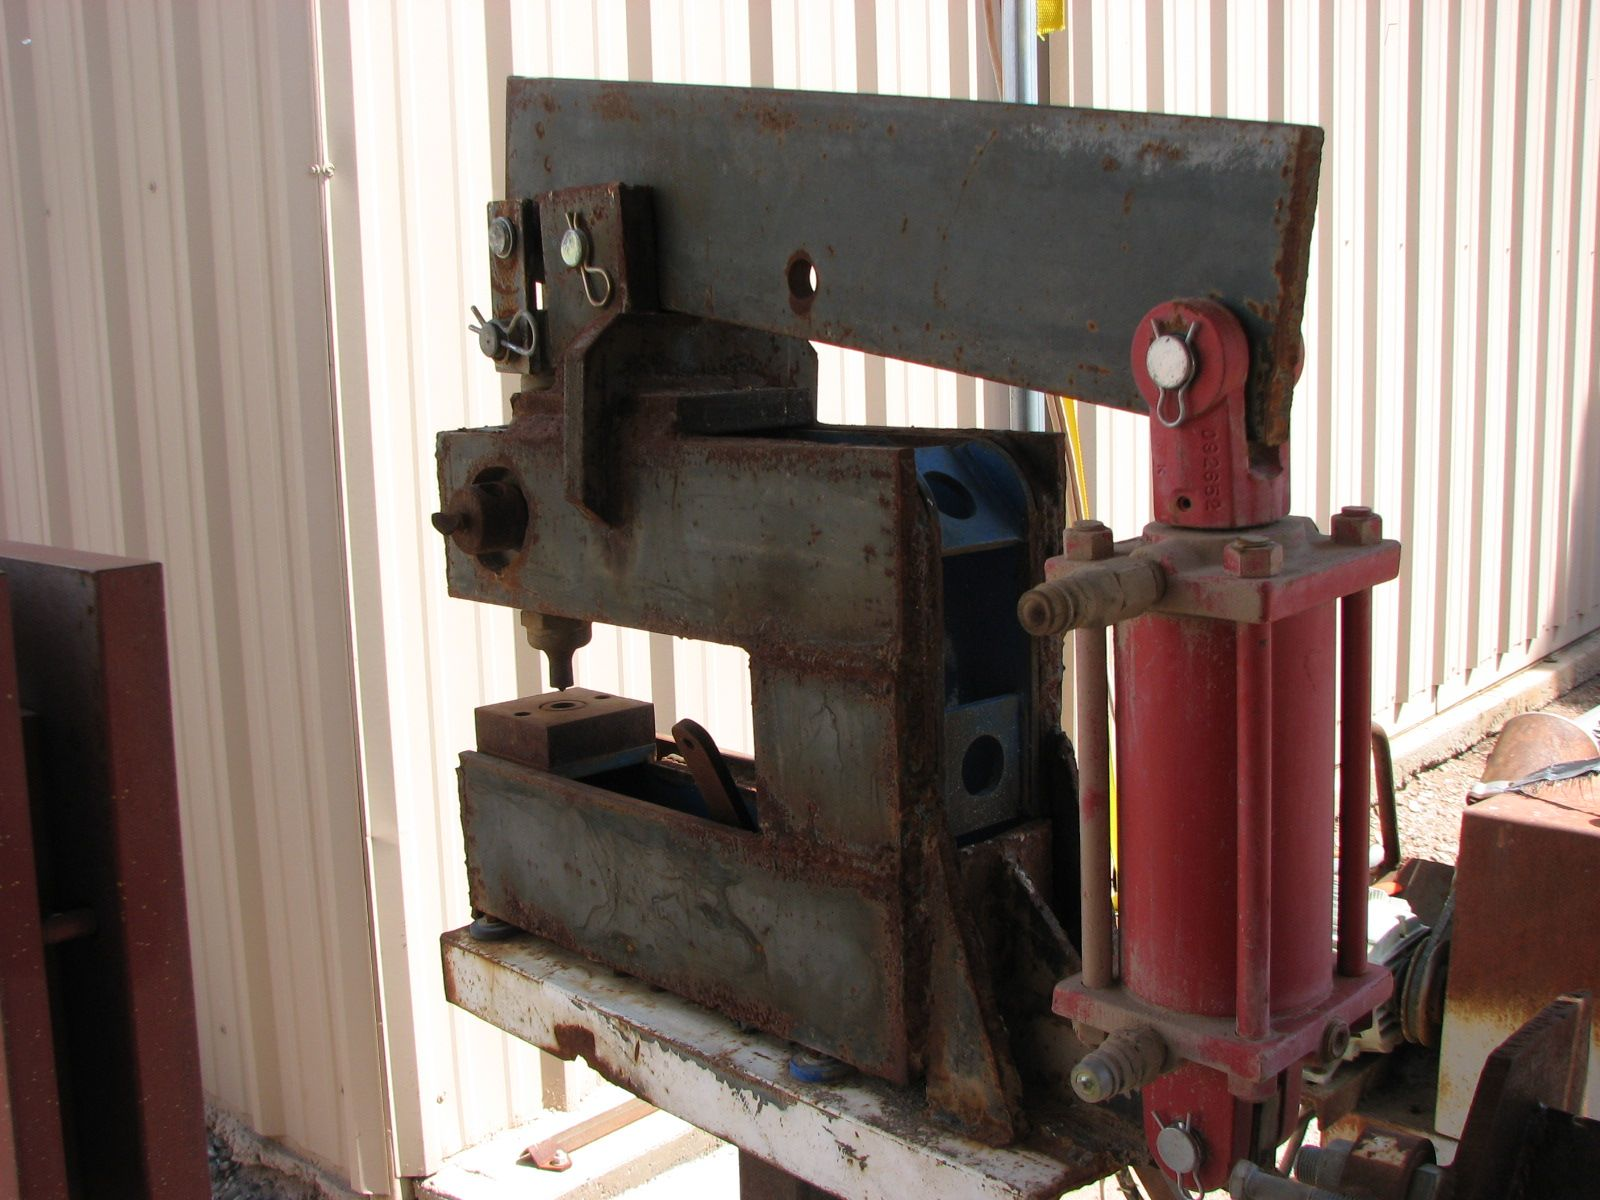 how to make hydraulic press at home